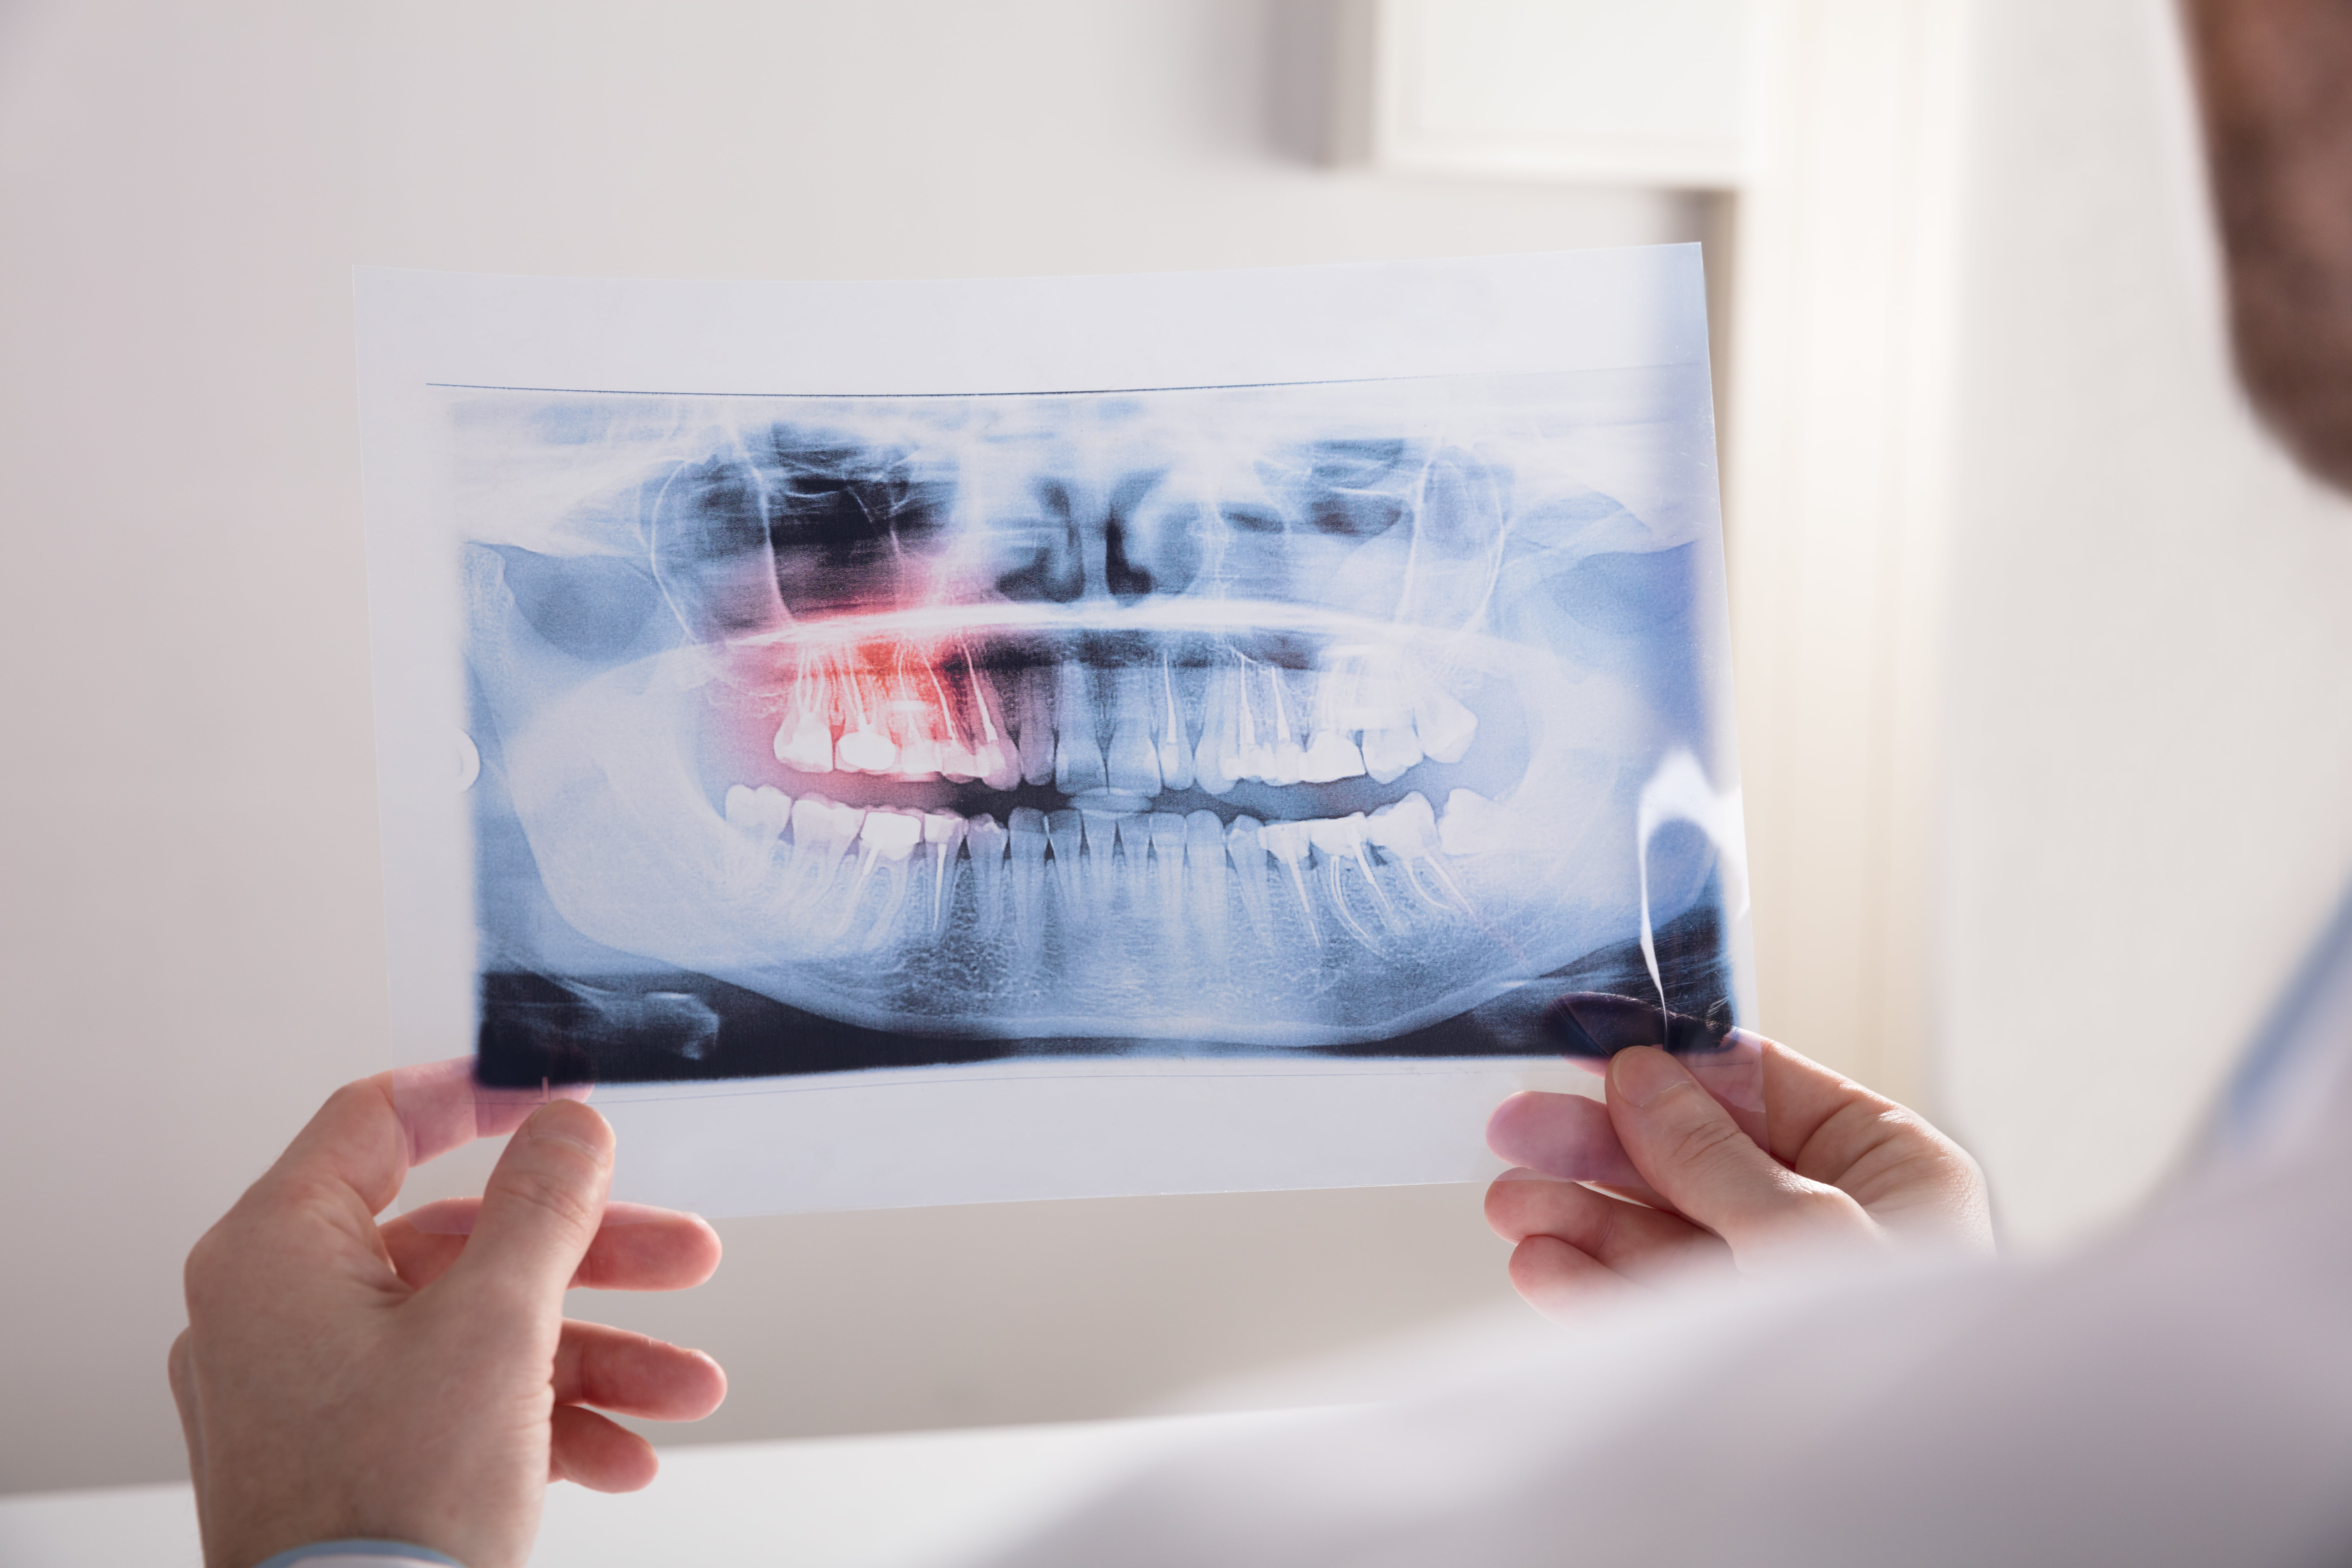 two hands holding a dental x-ray on either side of the x-ray film